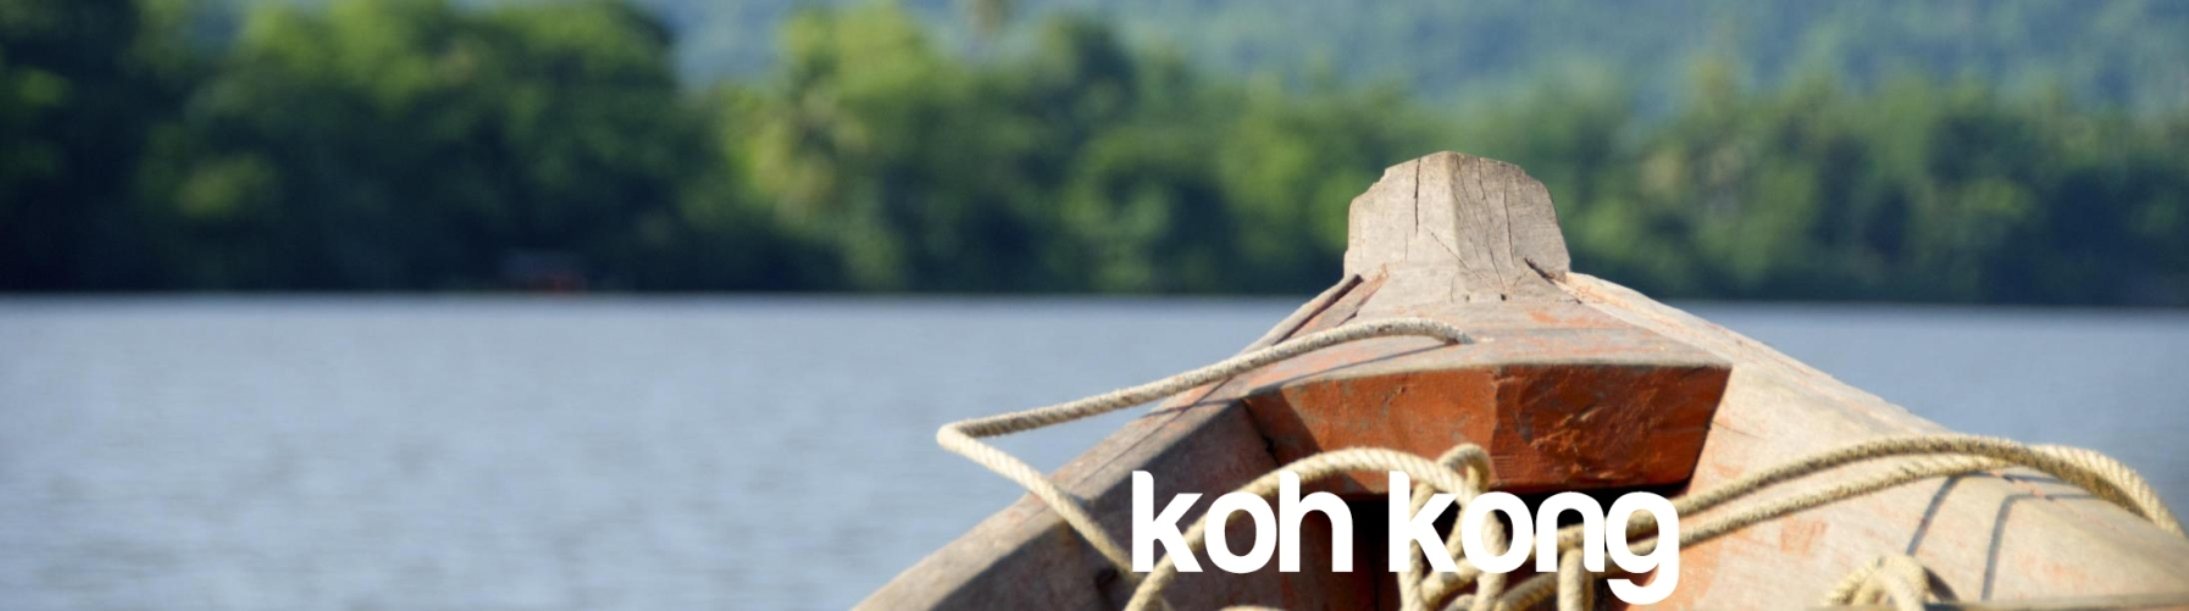 destination-kohkong